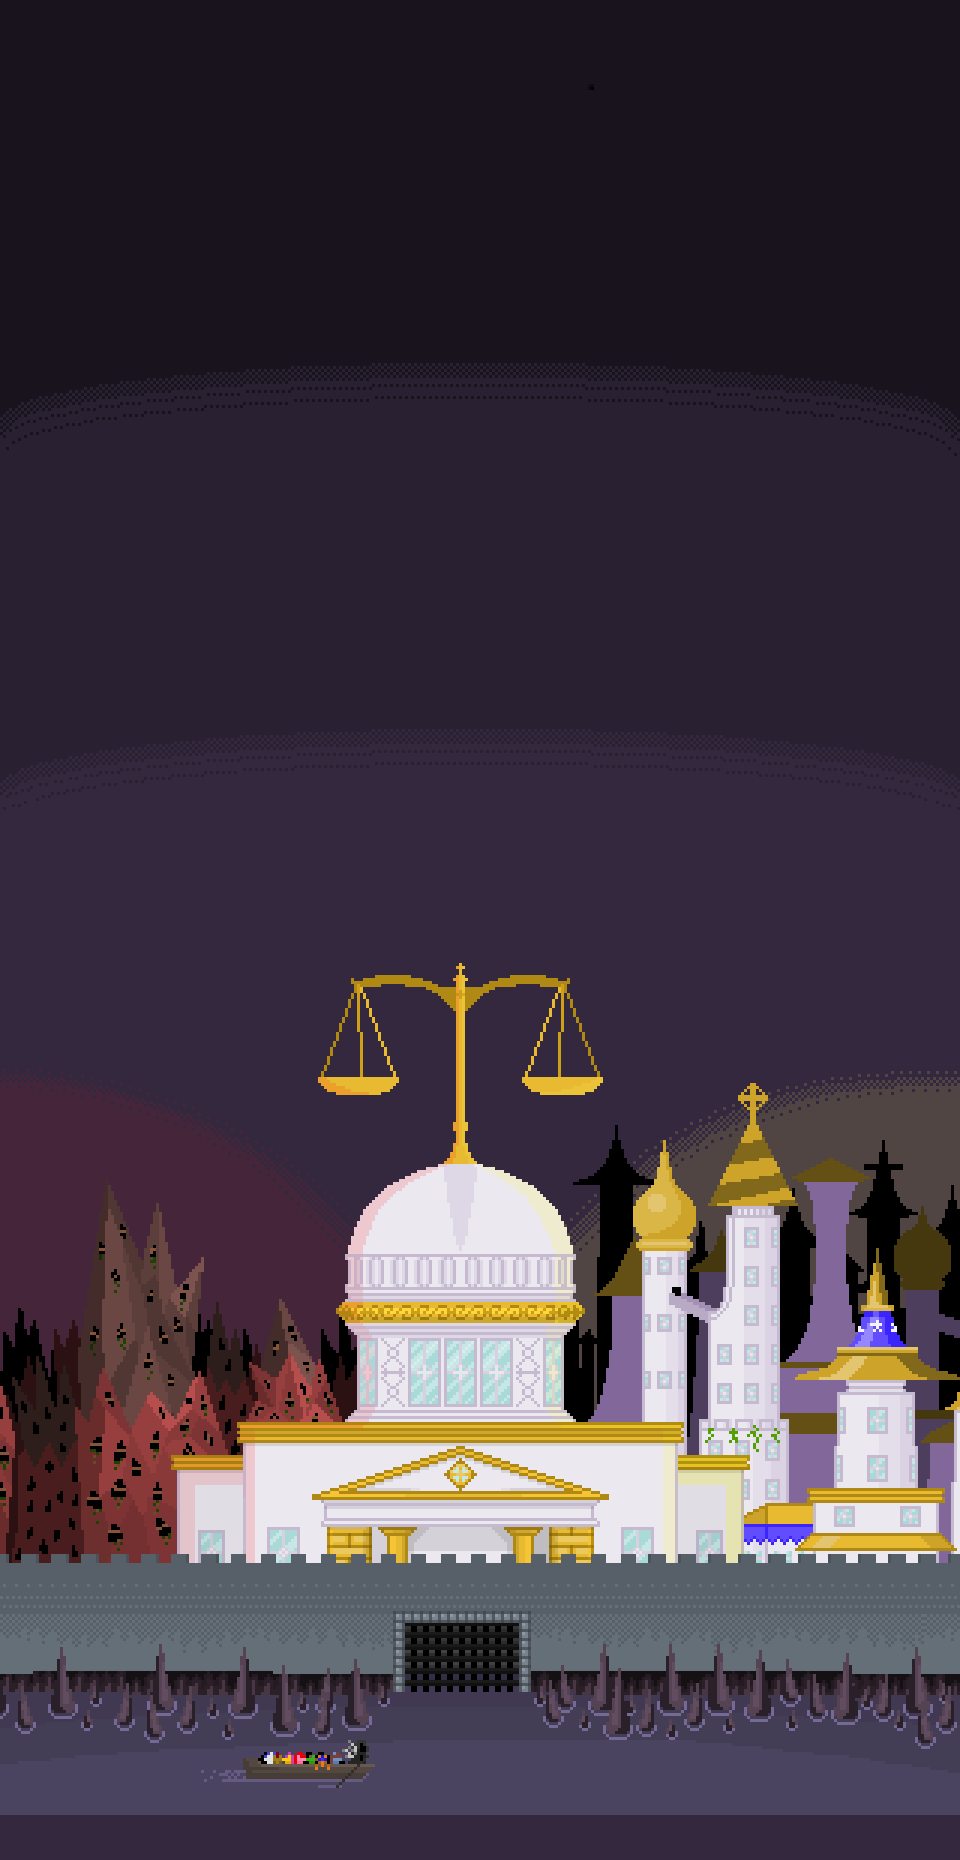 Tartarus, Elysium, and The Courthouse by herooftime1000